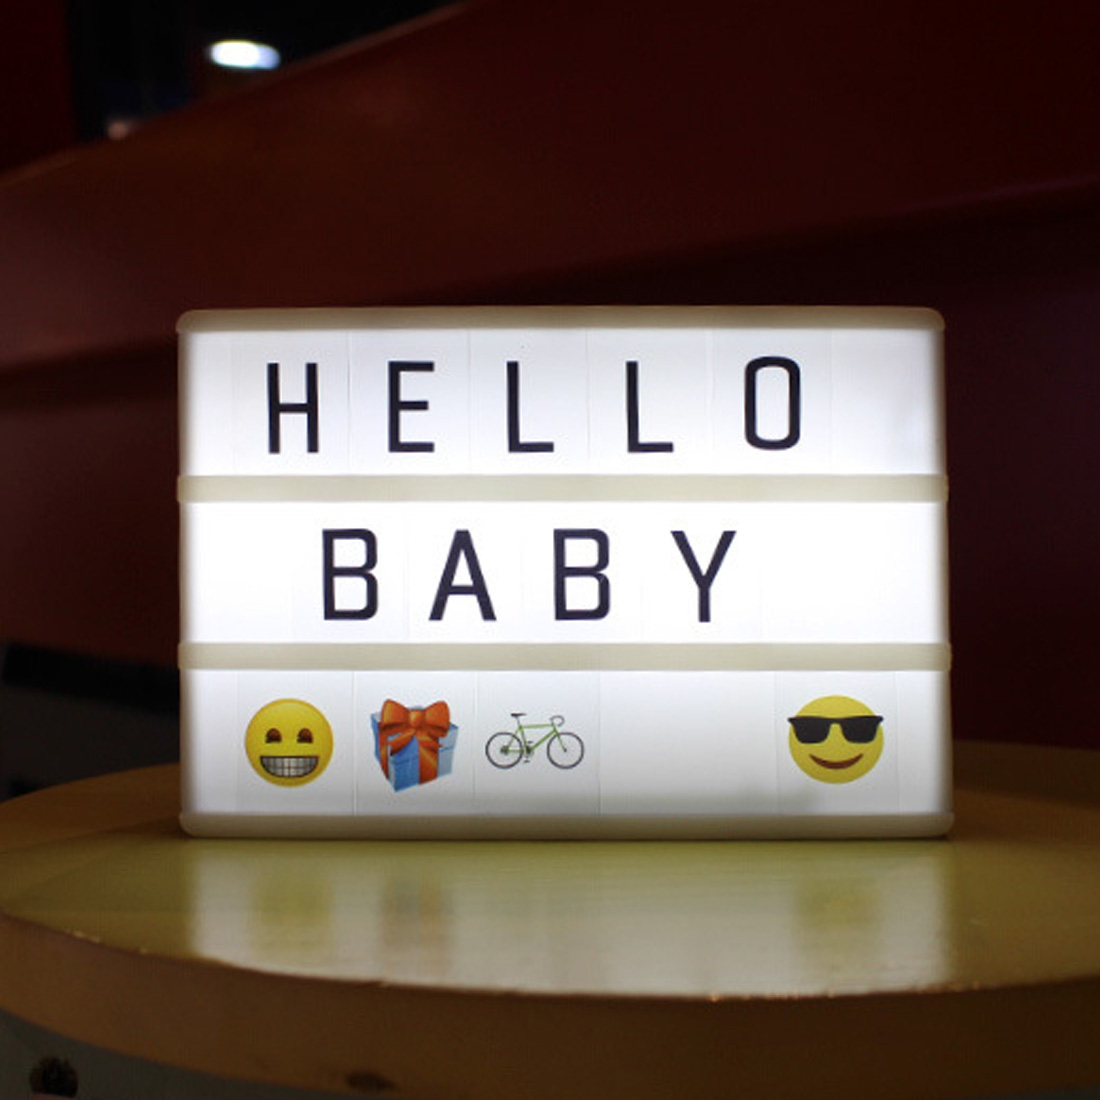 A6 Lightbox Light Letters Combination Cinematic Light Box Card LED Lamp Luminous Box DIY Symbols NumbersA6 Lightbox Light Letters Combination Cinematic Light Box Card LED Lamp Luminous Box DIY Symbols Numbers